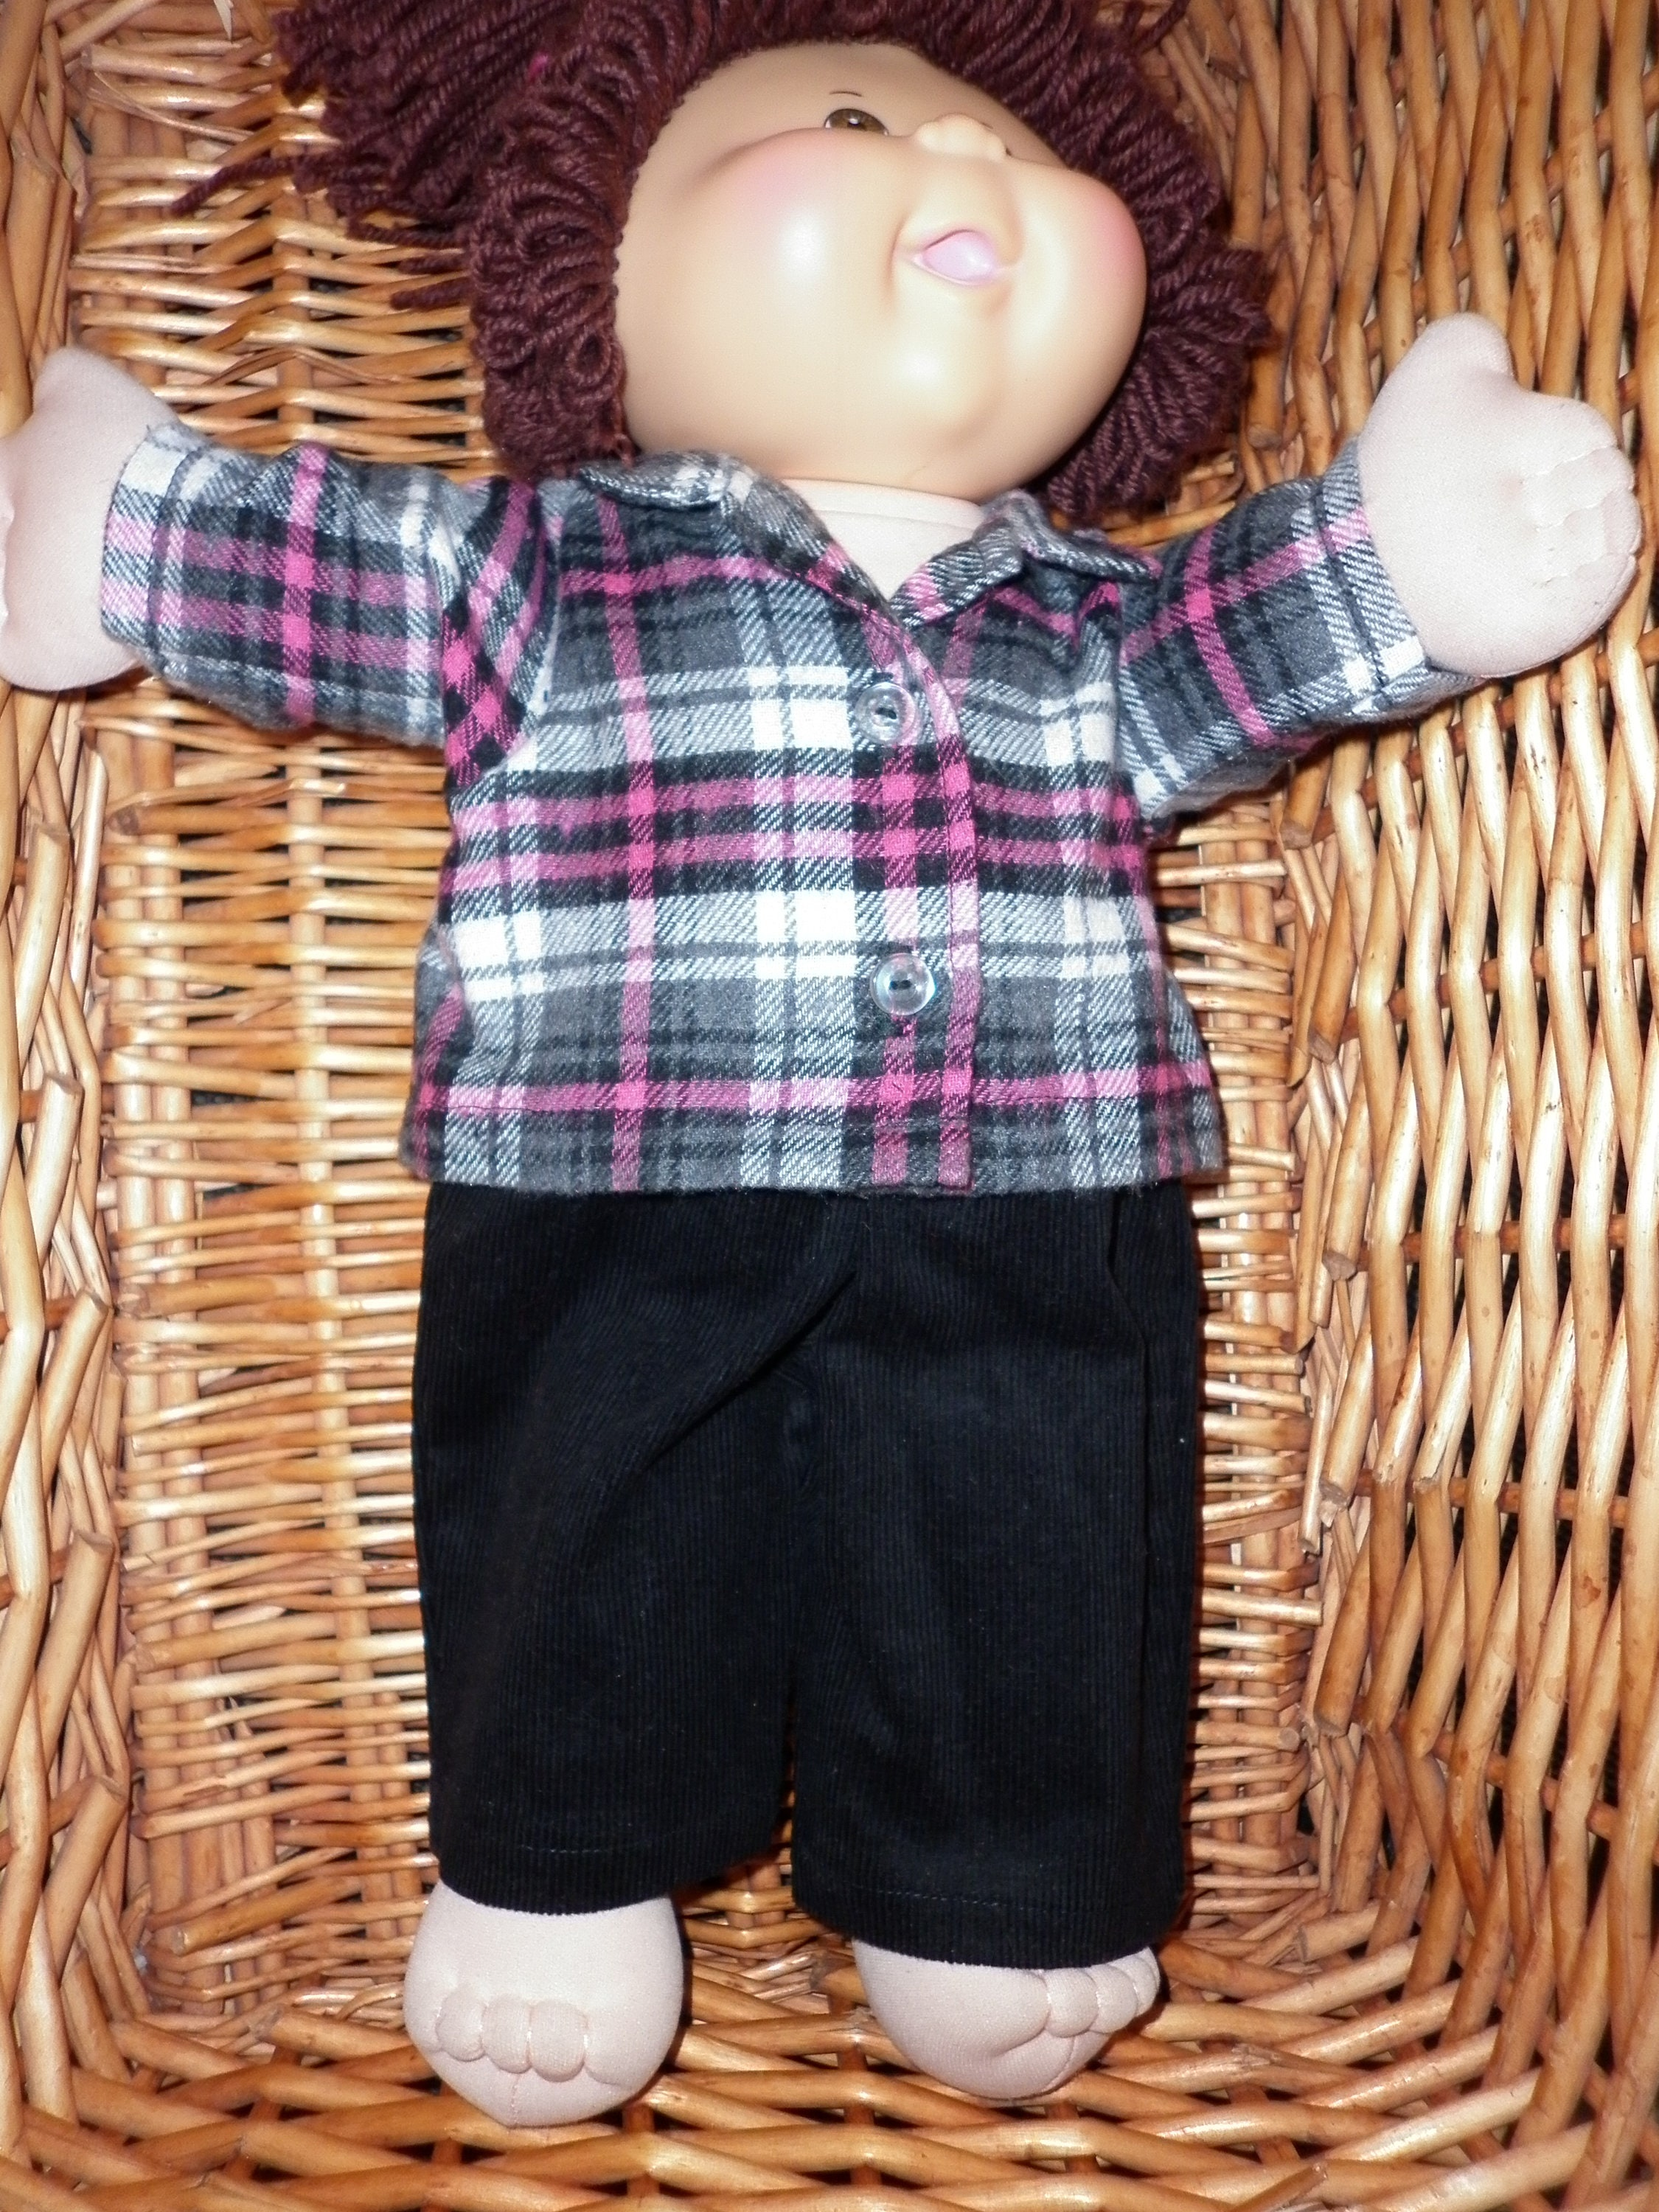 Cabbage Patch Doll Clothes Fits 16 Inch Girl Mouse Blouse and Red Black Skirt No Doll